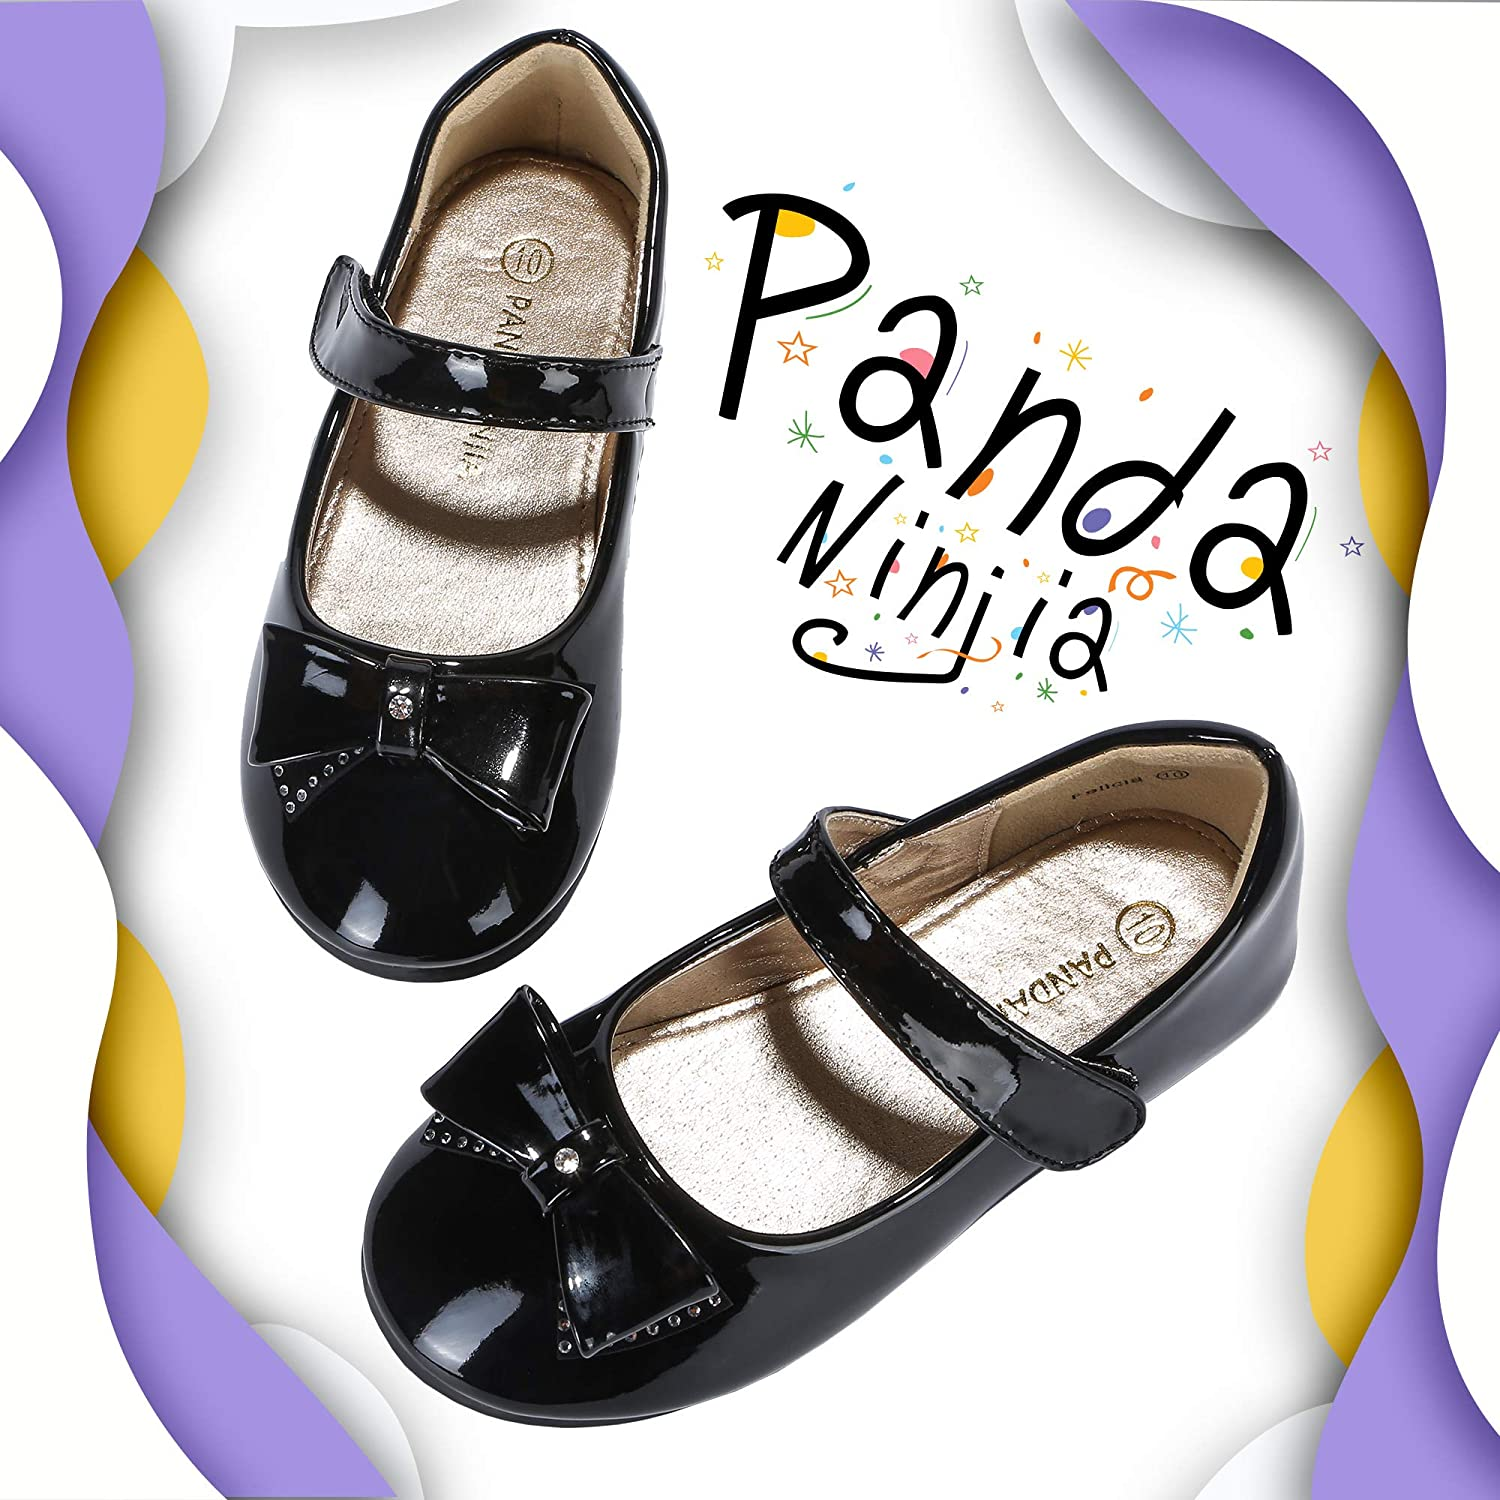 PANDANINJIA Girls Toddler//Little Kid Felicia Flats Dress Shoes Bow Flower Girl Mary Jane Ballet Ballerina Flats Wedding Party School Uniform Shoes Black Patent, 13 M US Little Kid